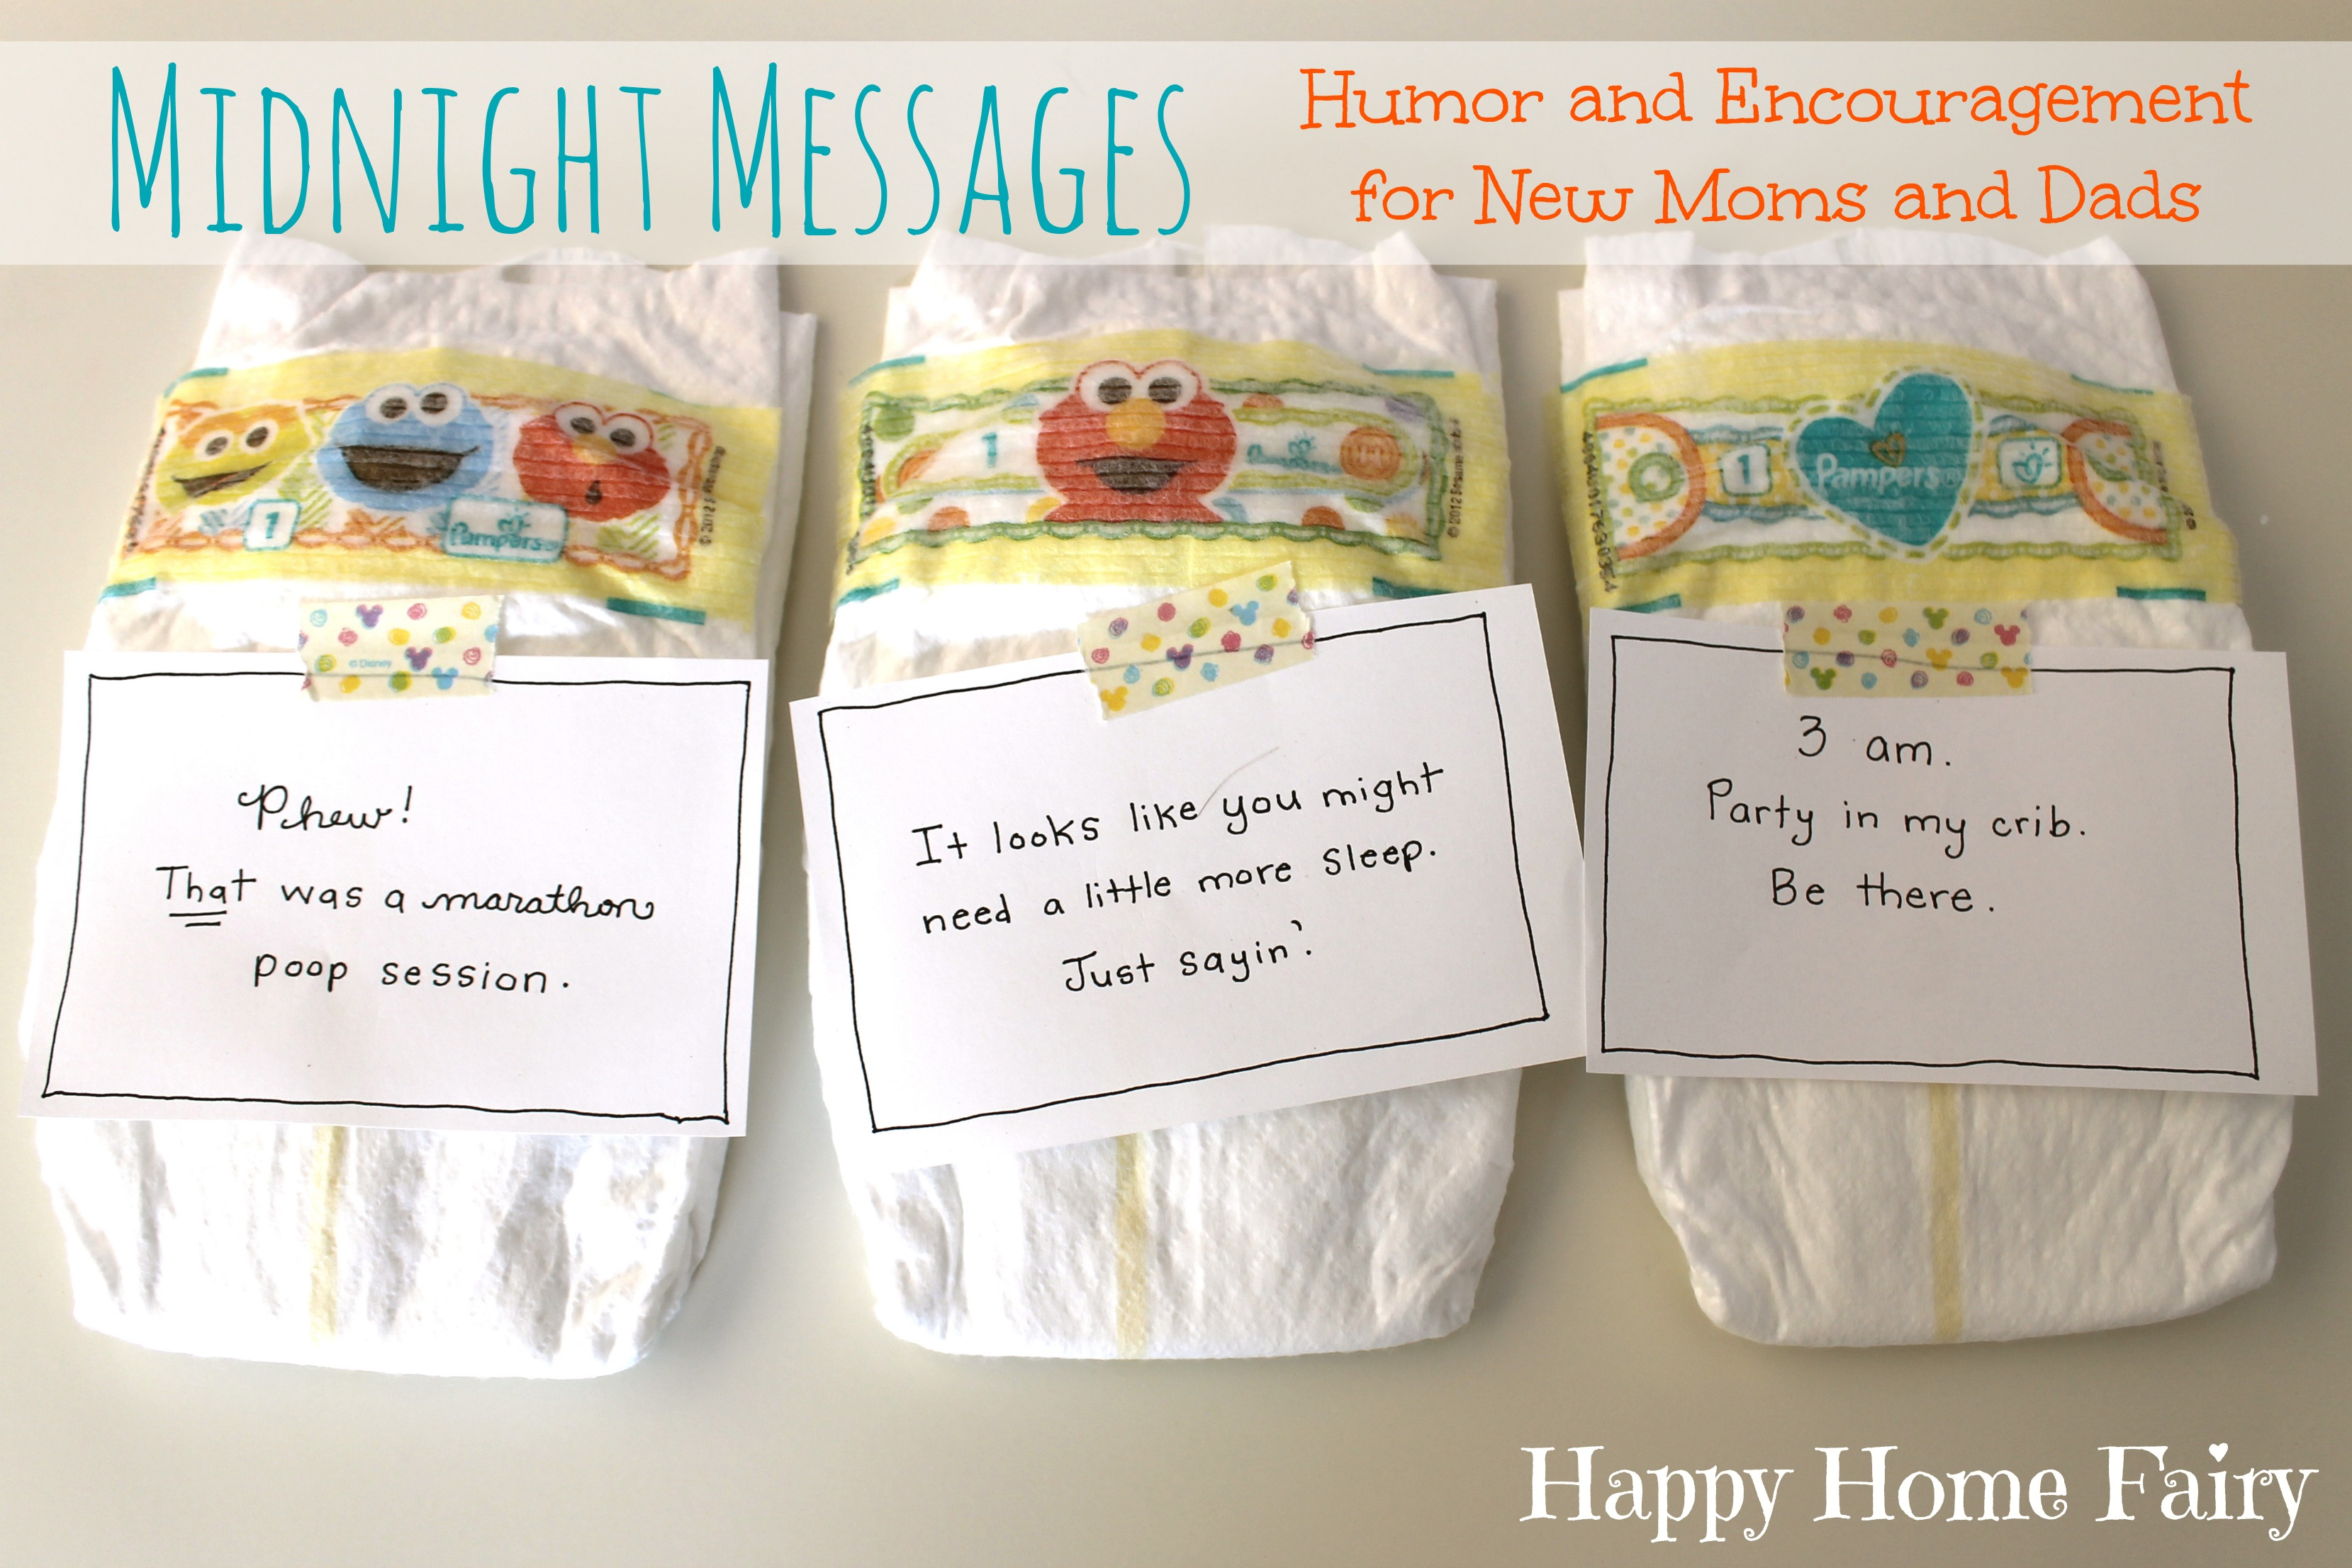 Midnight messages for new mommies free printable happy home fairy midnight messages free printable notes with hilarious quotes from baby for the middle of the kristyandbryce Gallery